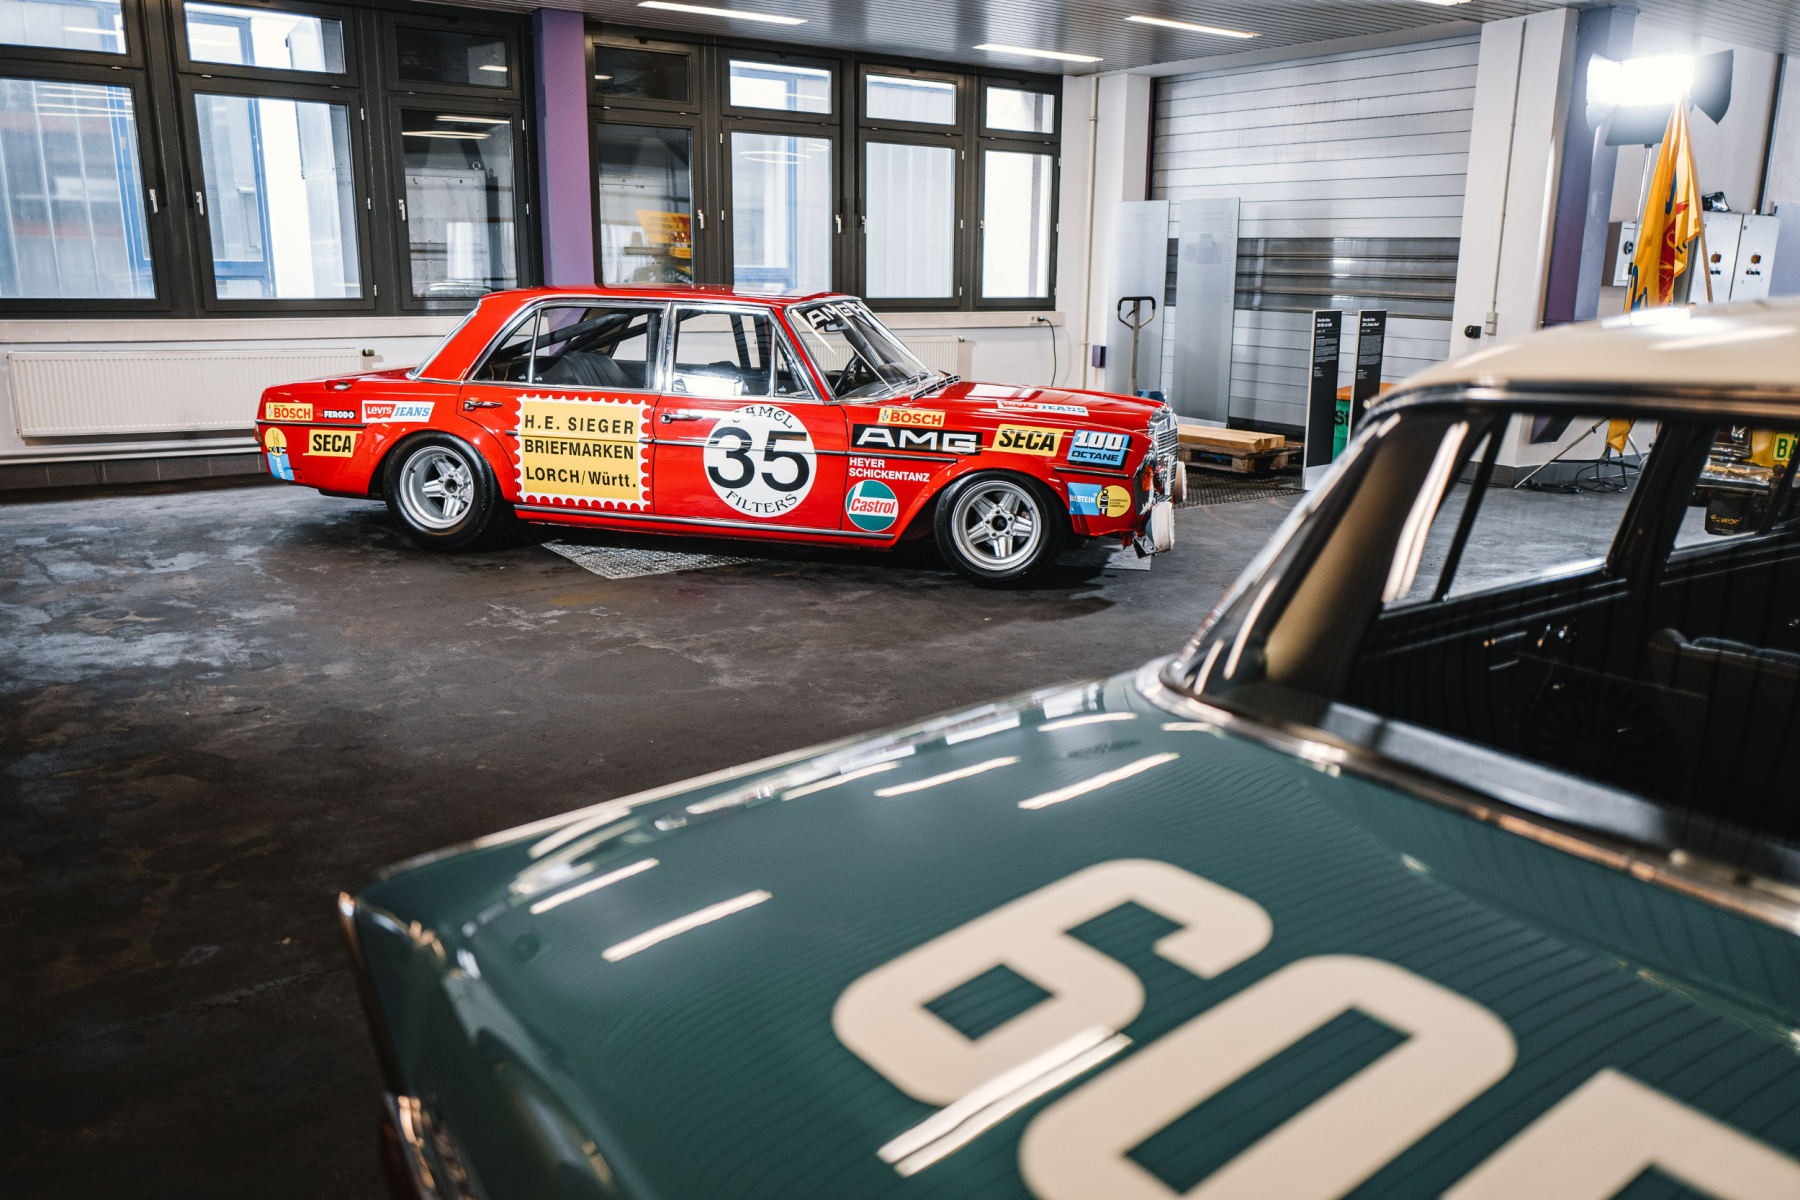 AMG 300 SEL 6.8 racing touring car based on the Mercedes-Benz 300 SEL 6.3 (W 109) luxury saloon, detailed reconstruction from 2006. Photo from the Classic Center Communication Hub (CCCH) of the Mercedes-Benz S-Class in 2020.